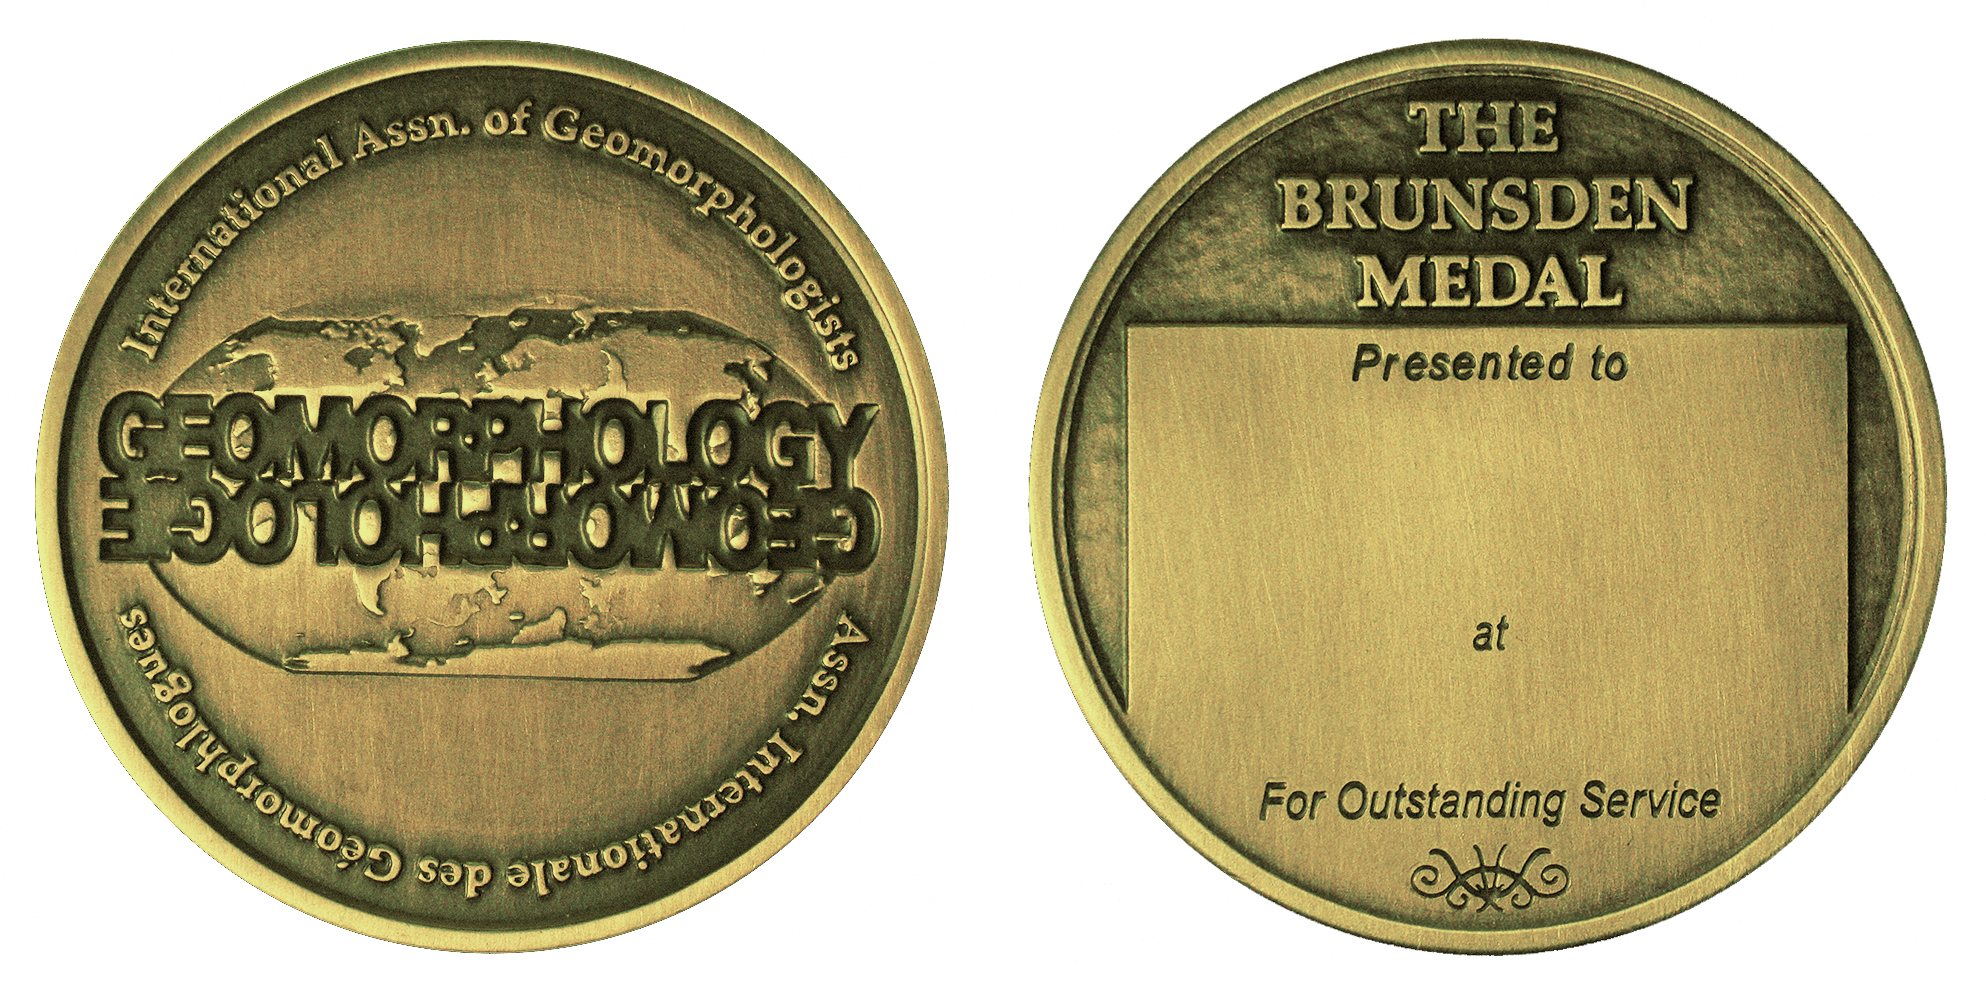 International Association of Geomorphologists Brunsden Medal Obv and Rev